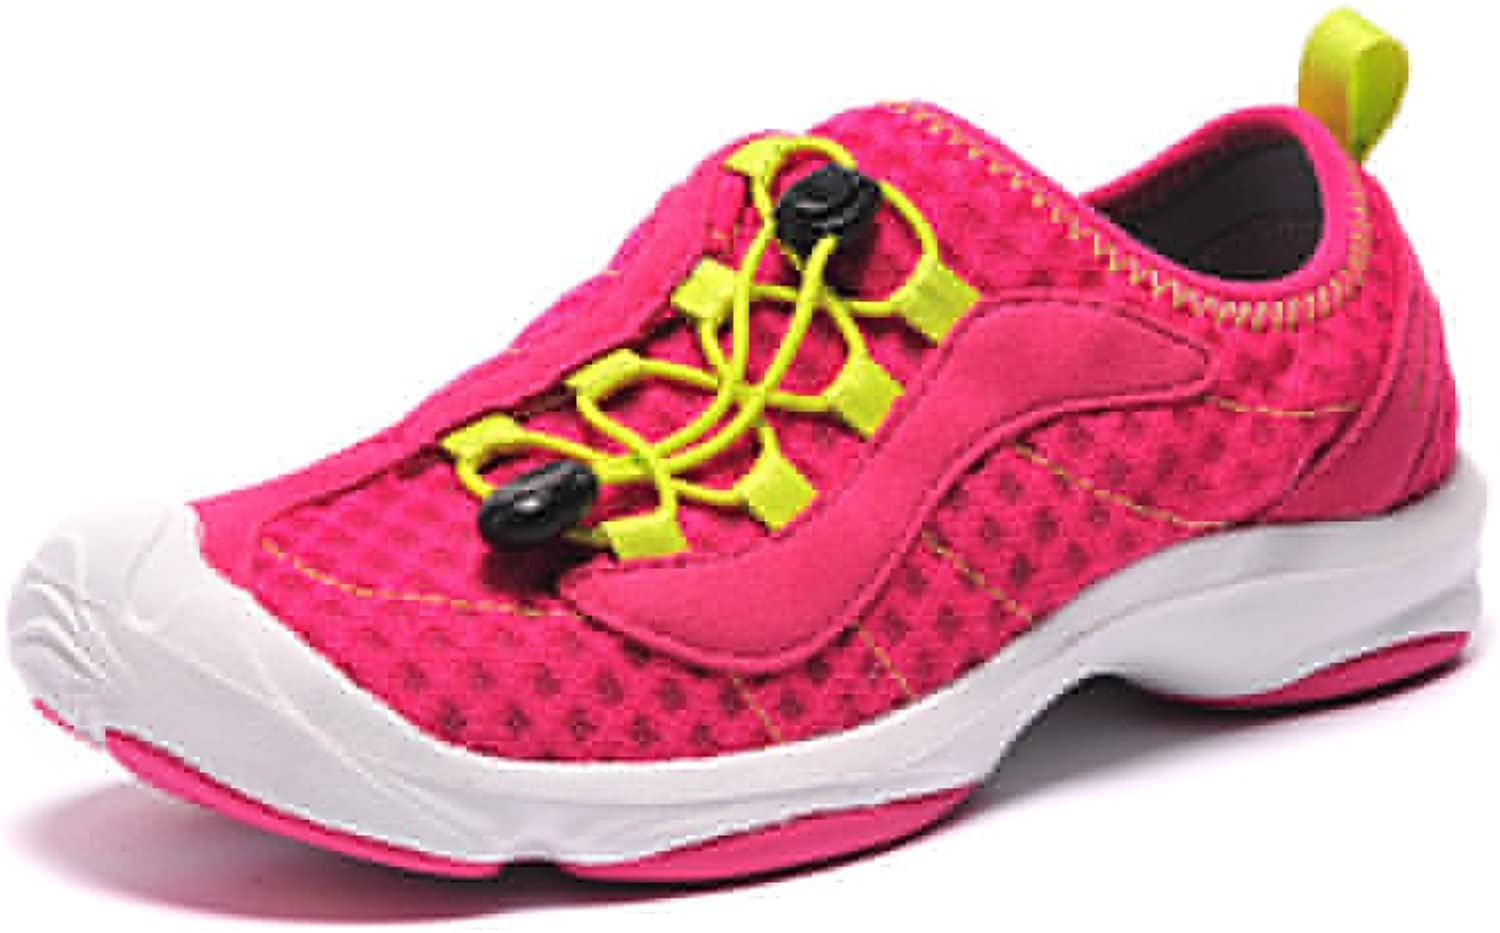 Minkun Breathable shoes Fashion Outdoor Sports shoes Casual shoes mesh shoes wear Running shoes